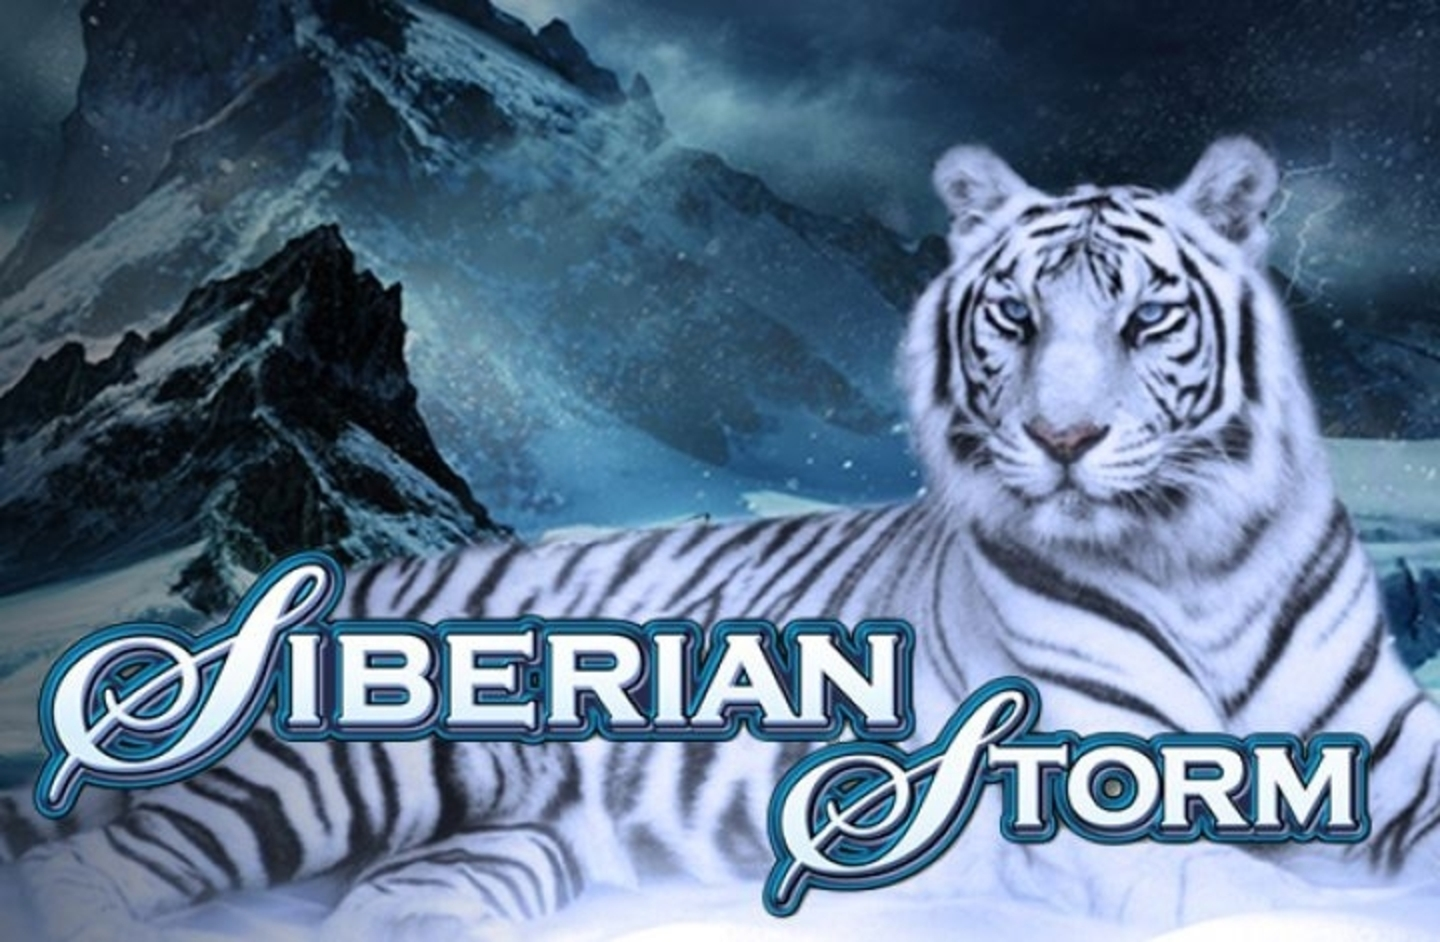 The Siberian Storm Online Slot Demo Game by IGT